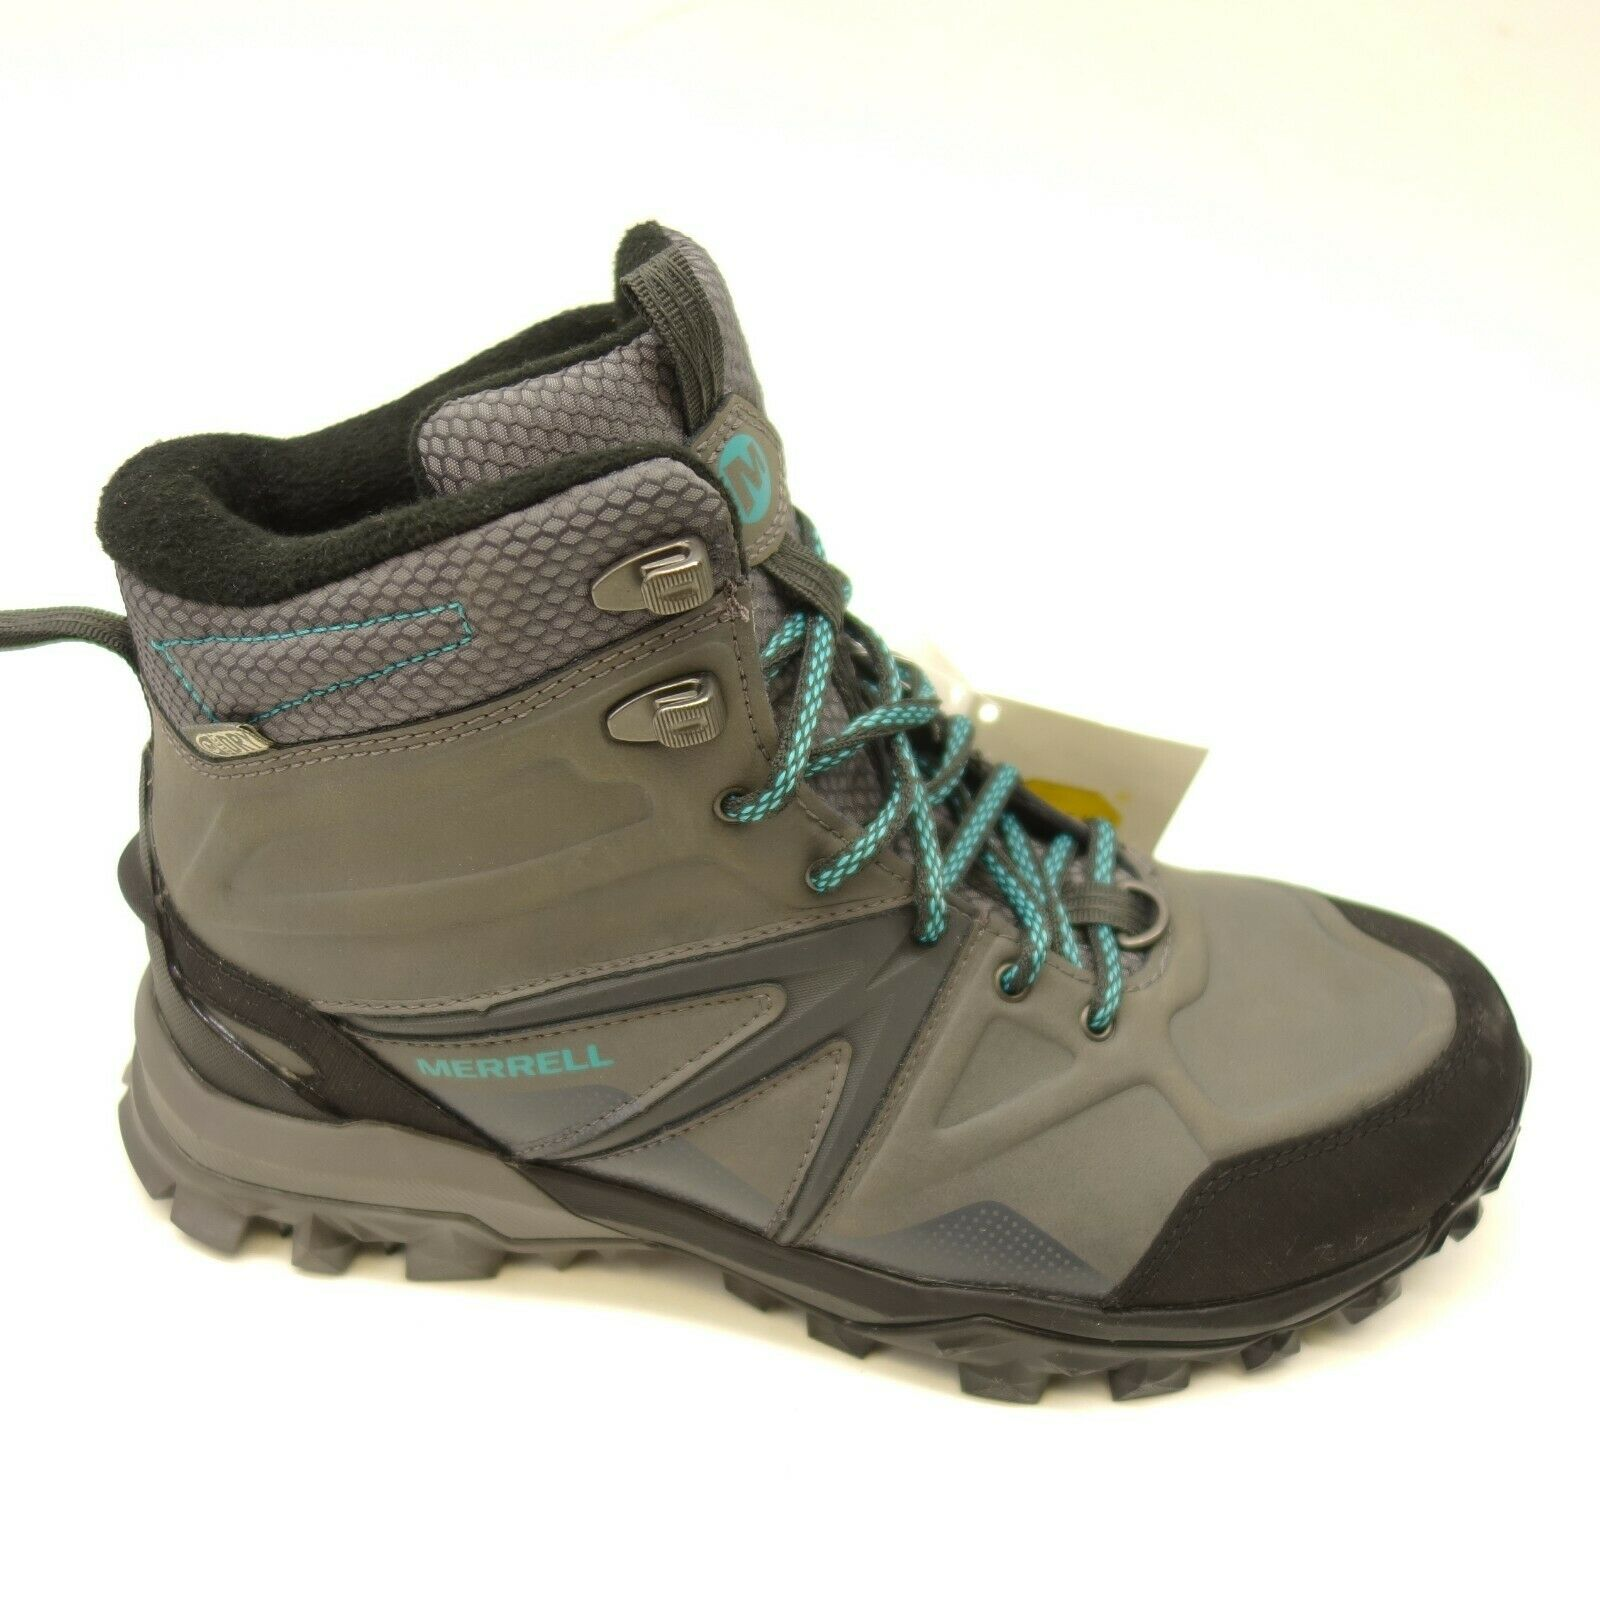 Merrell Capra Glacial Ice+ US 7.5 EU 38 Mid WP Leather Support Womens Boots